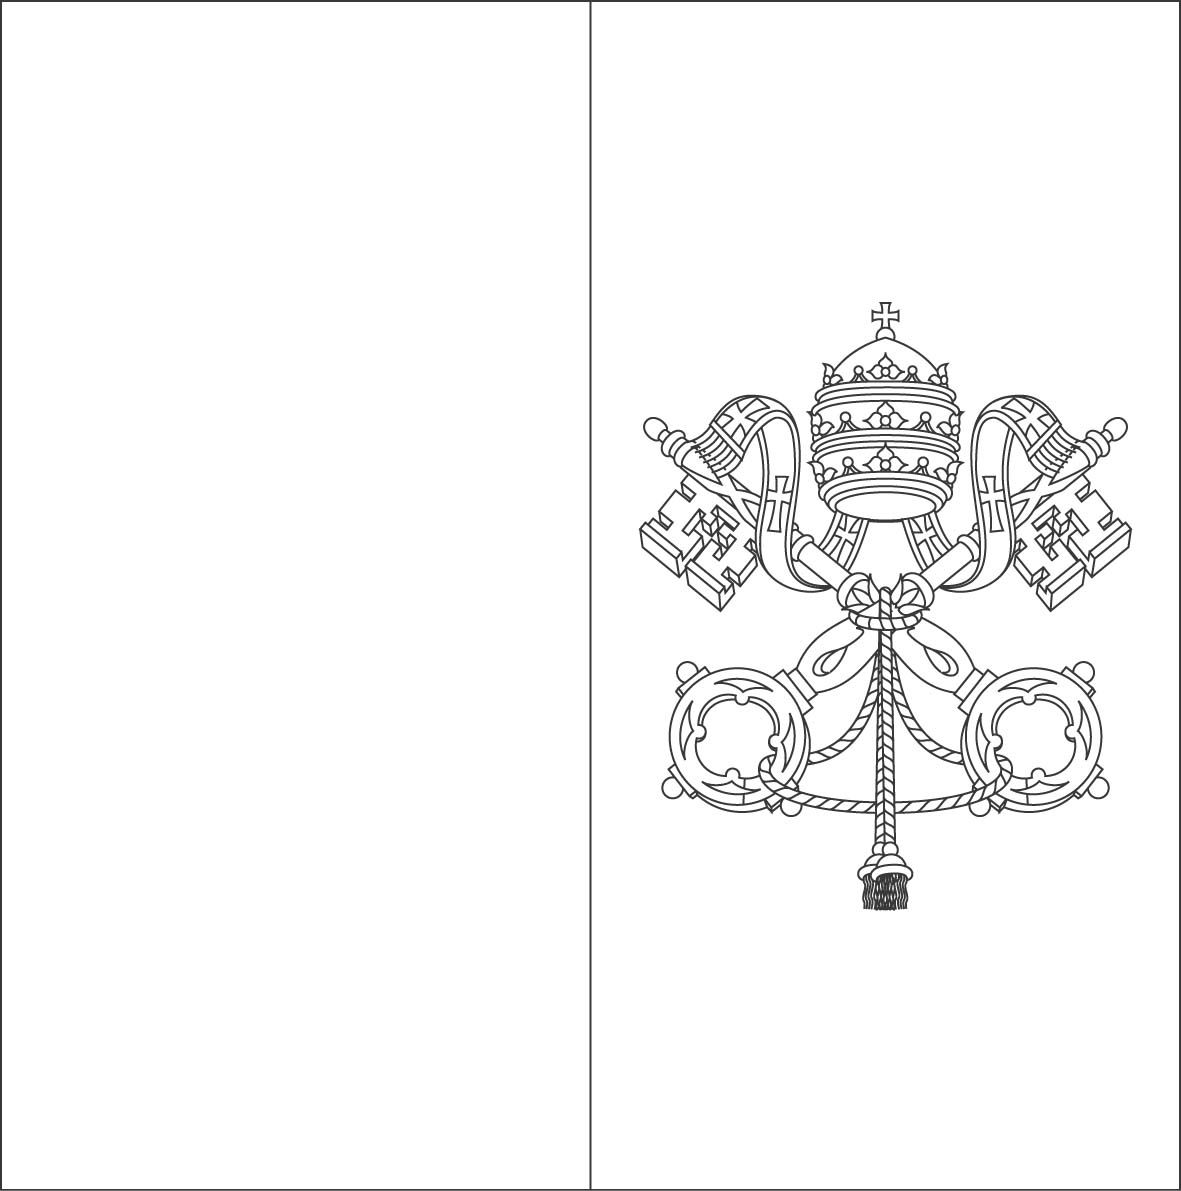 Vatican Flag Coloring Sheets Plus Coloring Sheets For All Us And